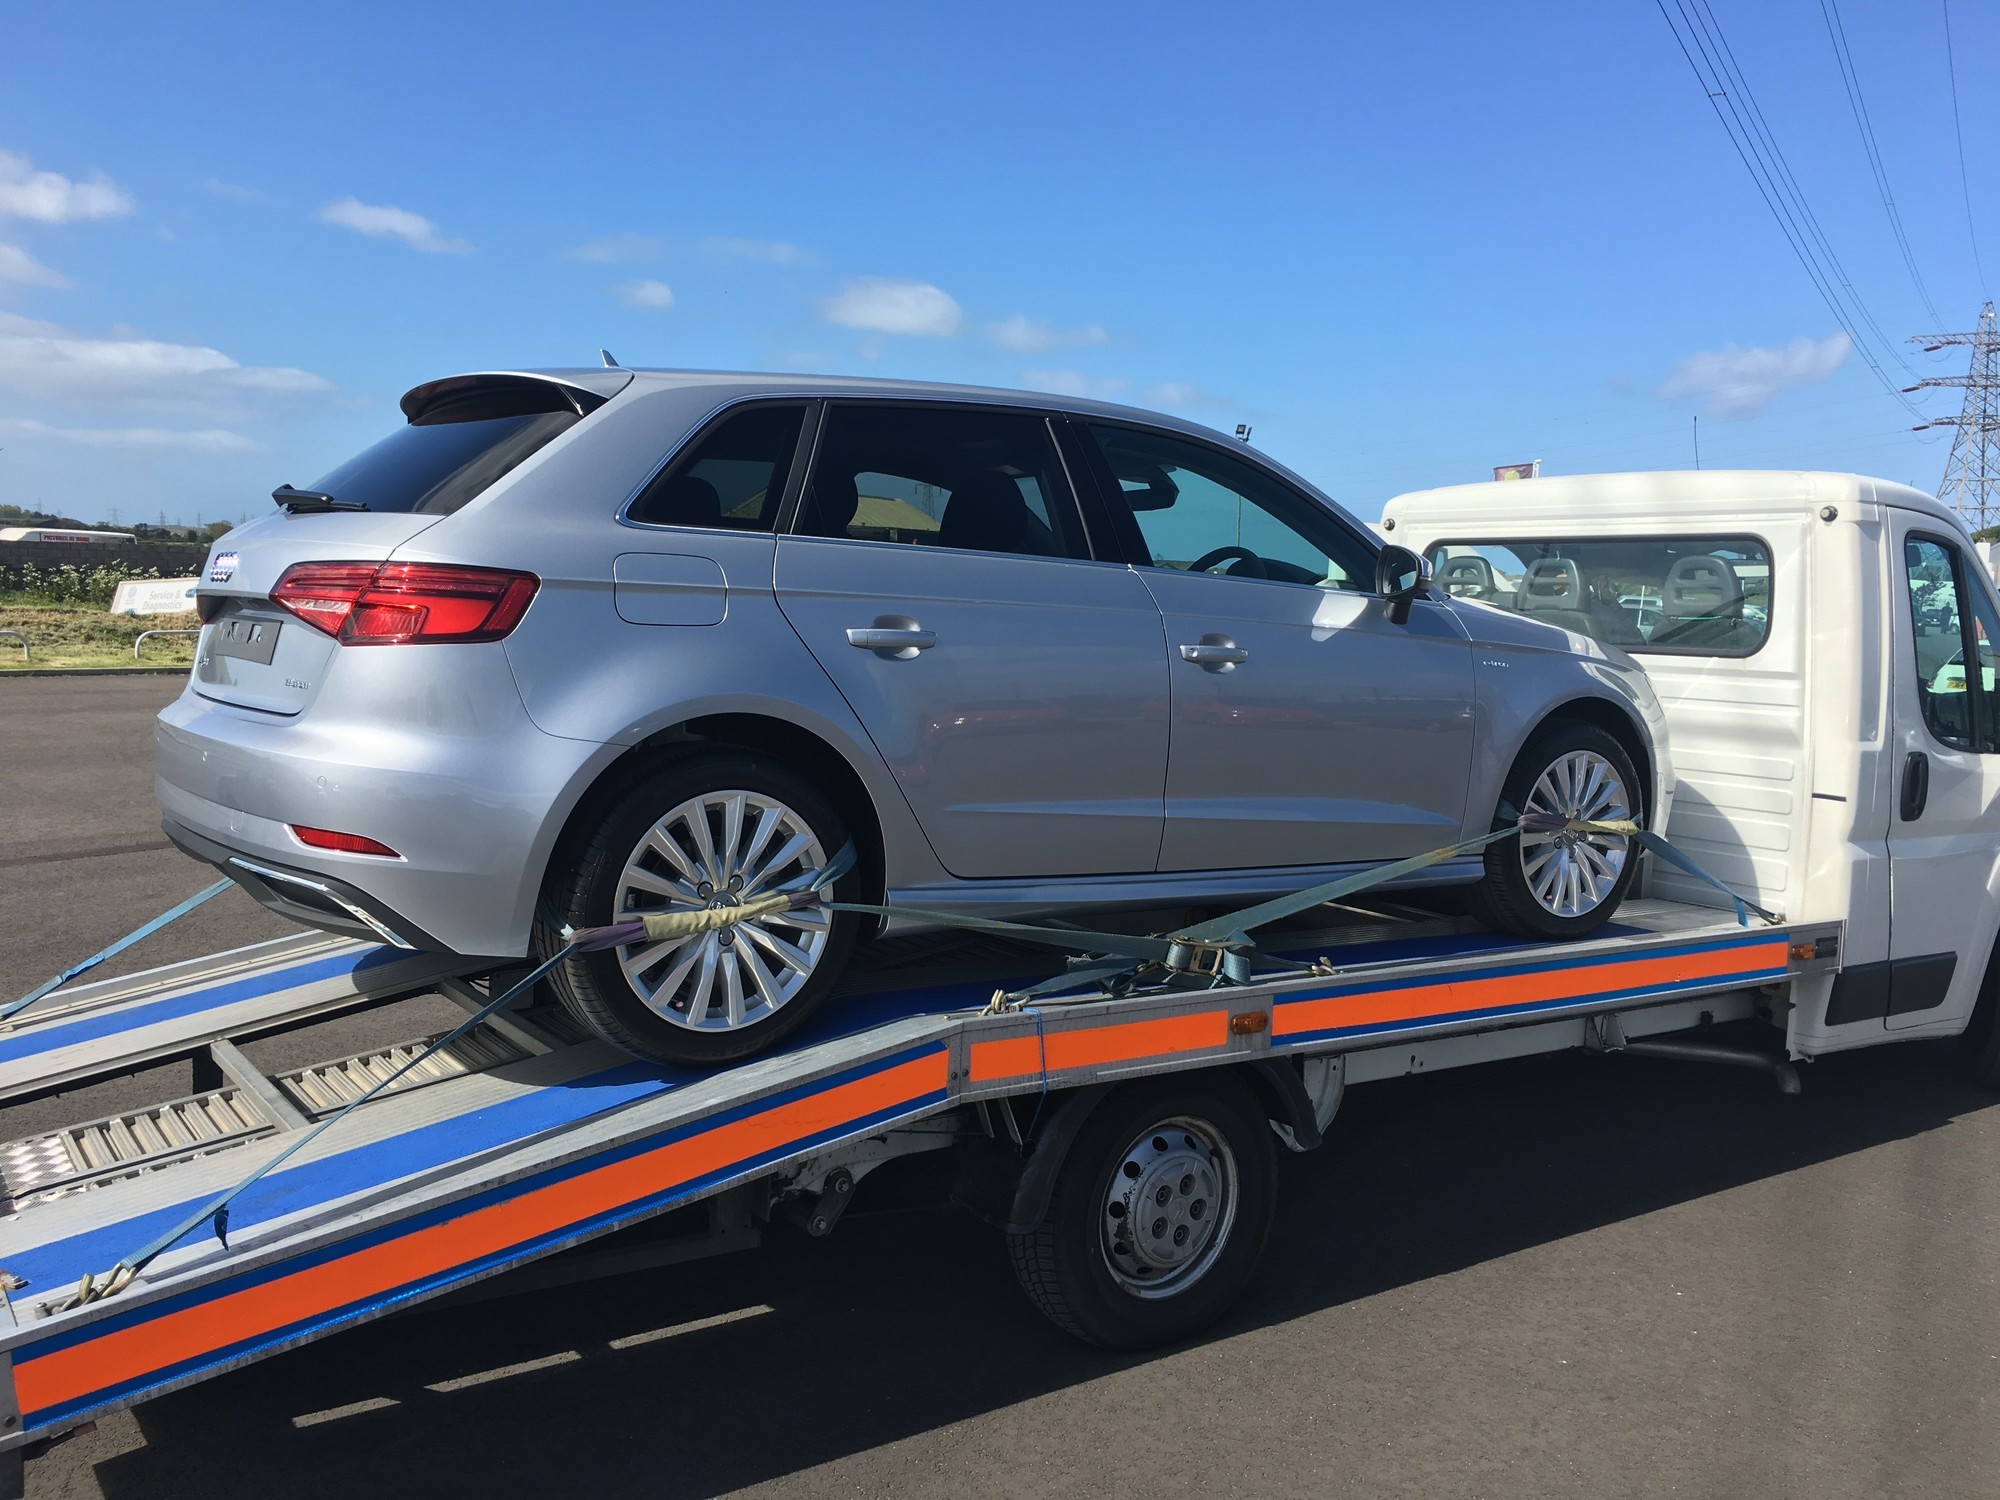 Brand New Unregistered Audi A3 Delivery